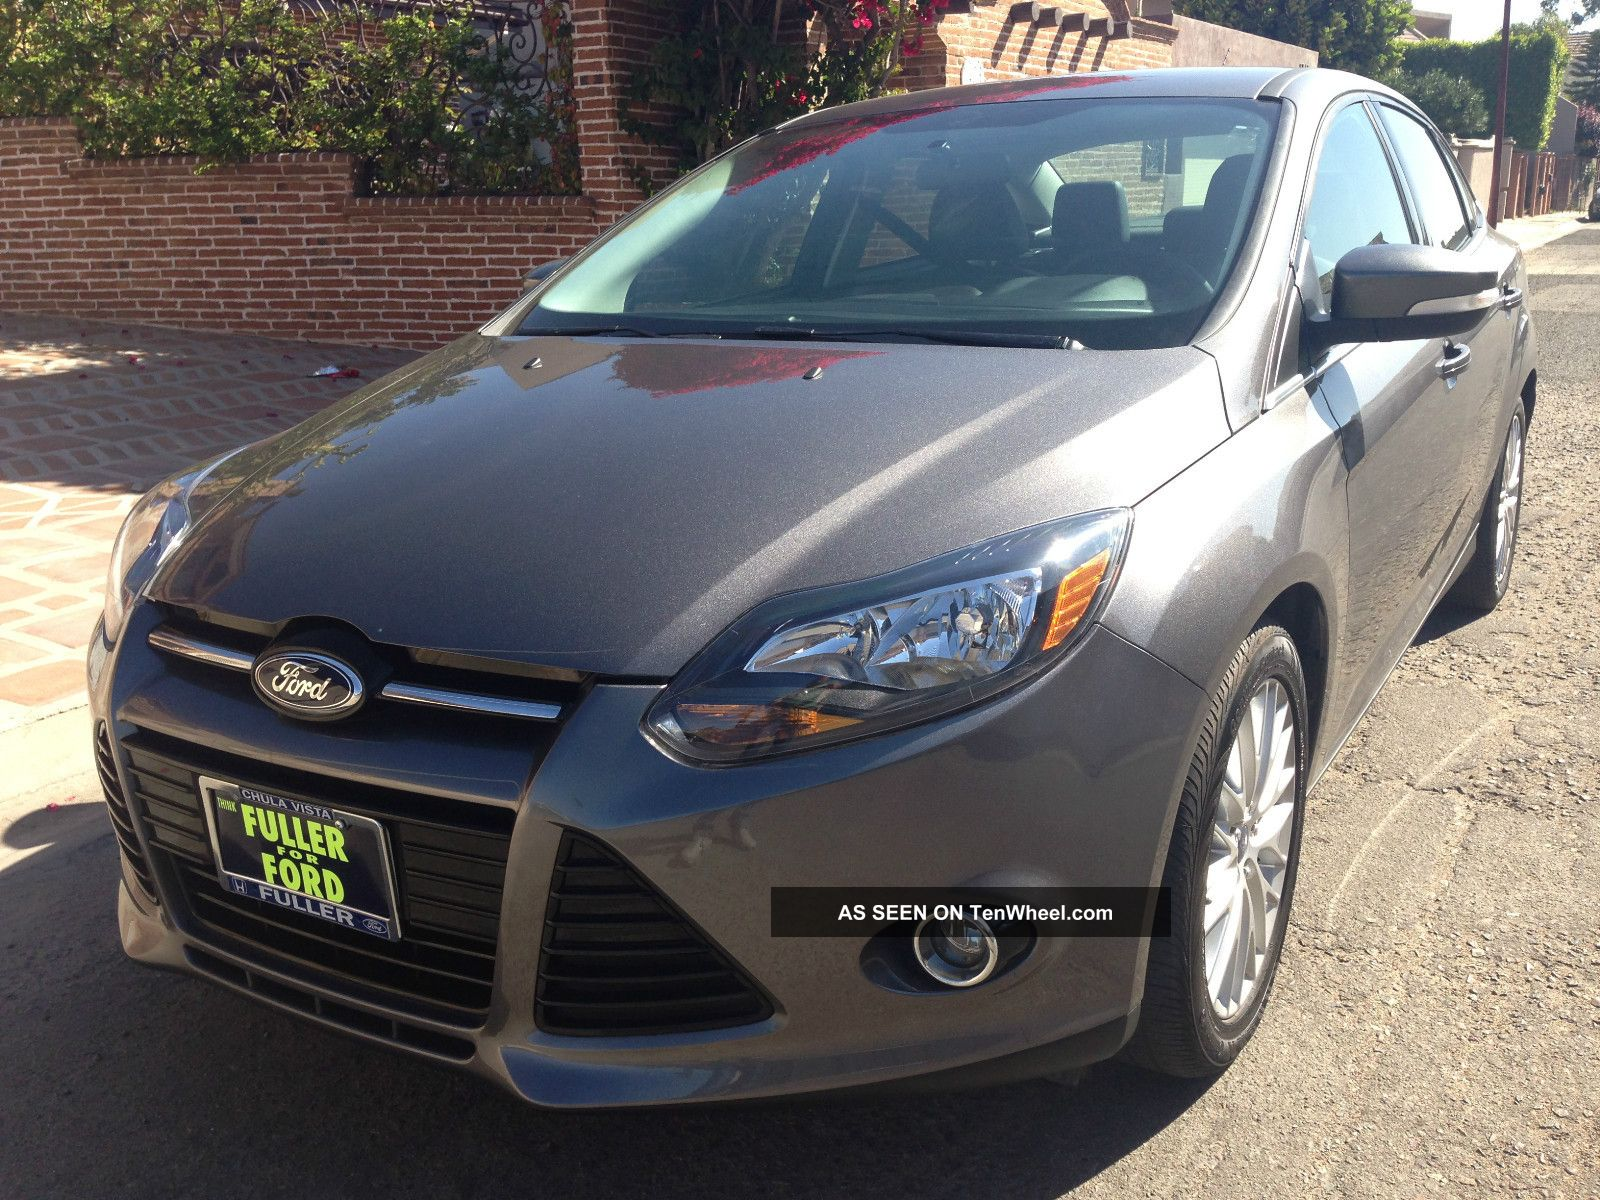 2013 Ford Focus Titanium Rebuilt Title In Hand Fully Loaded